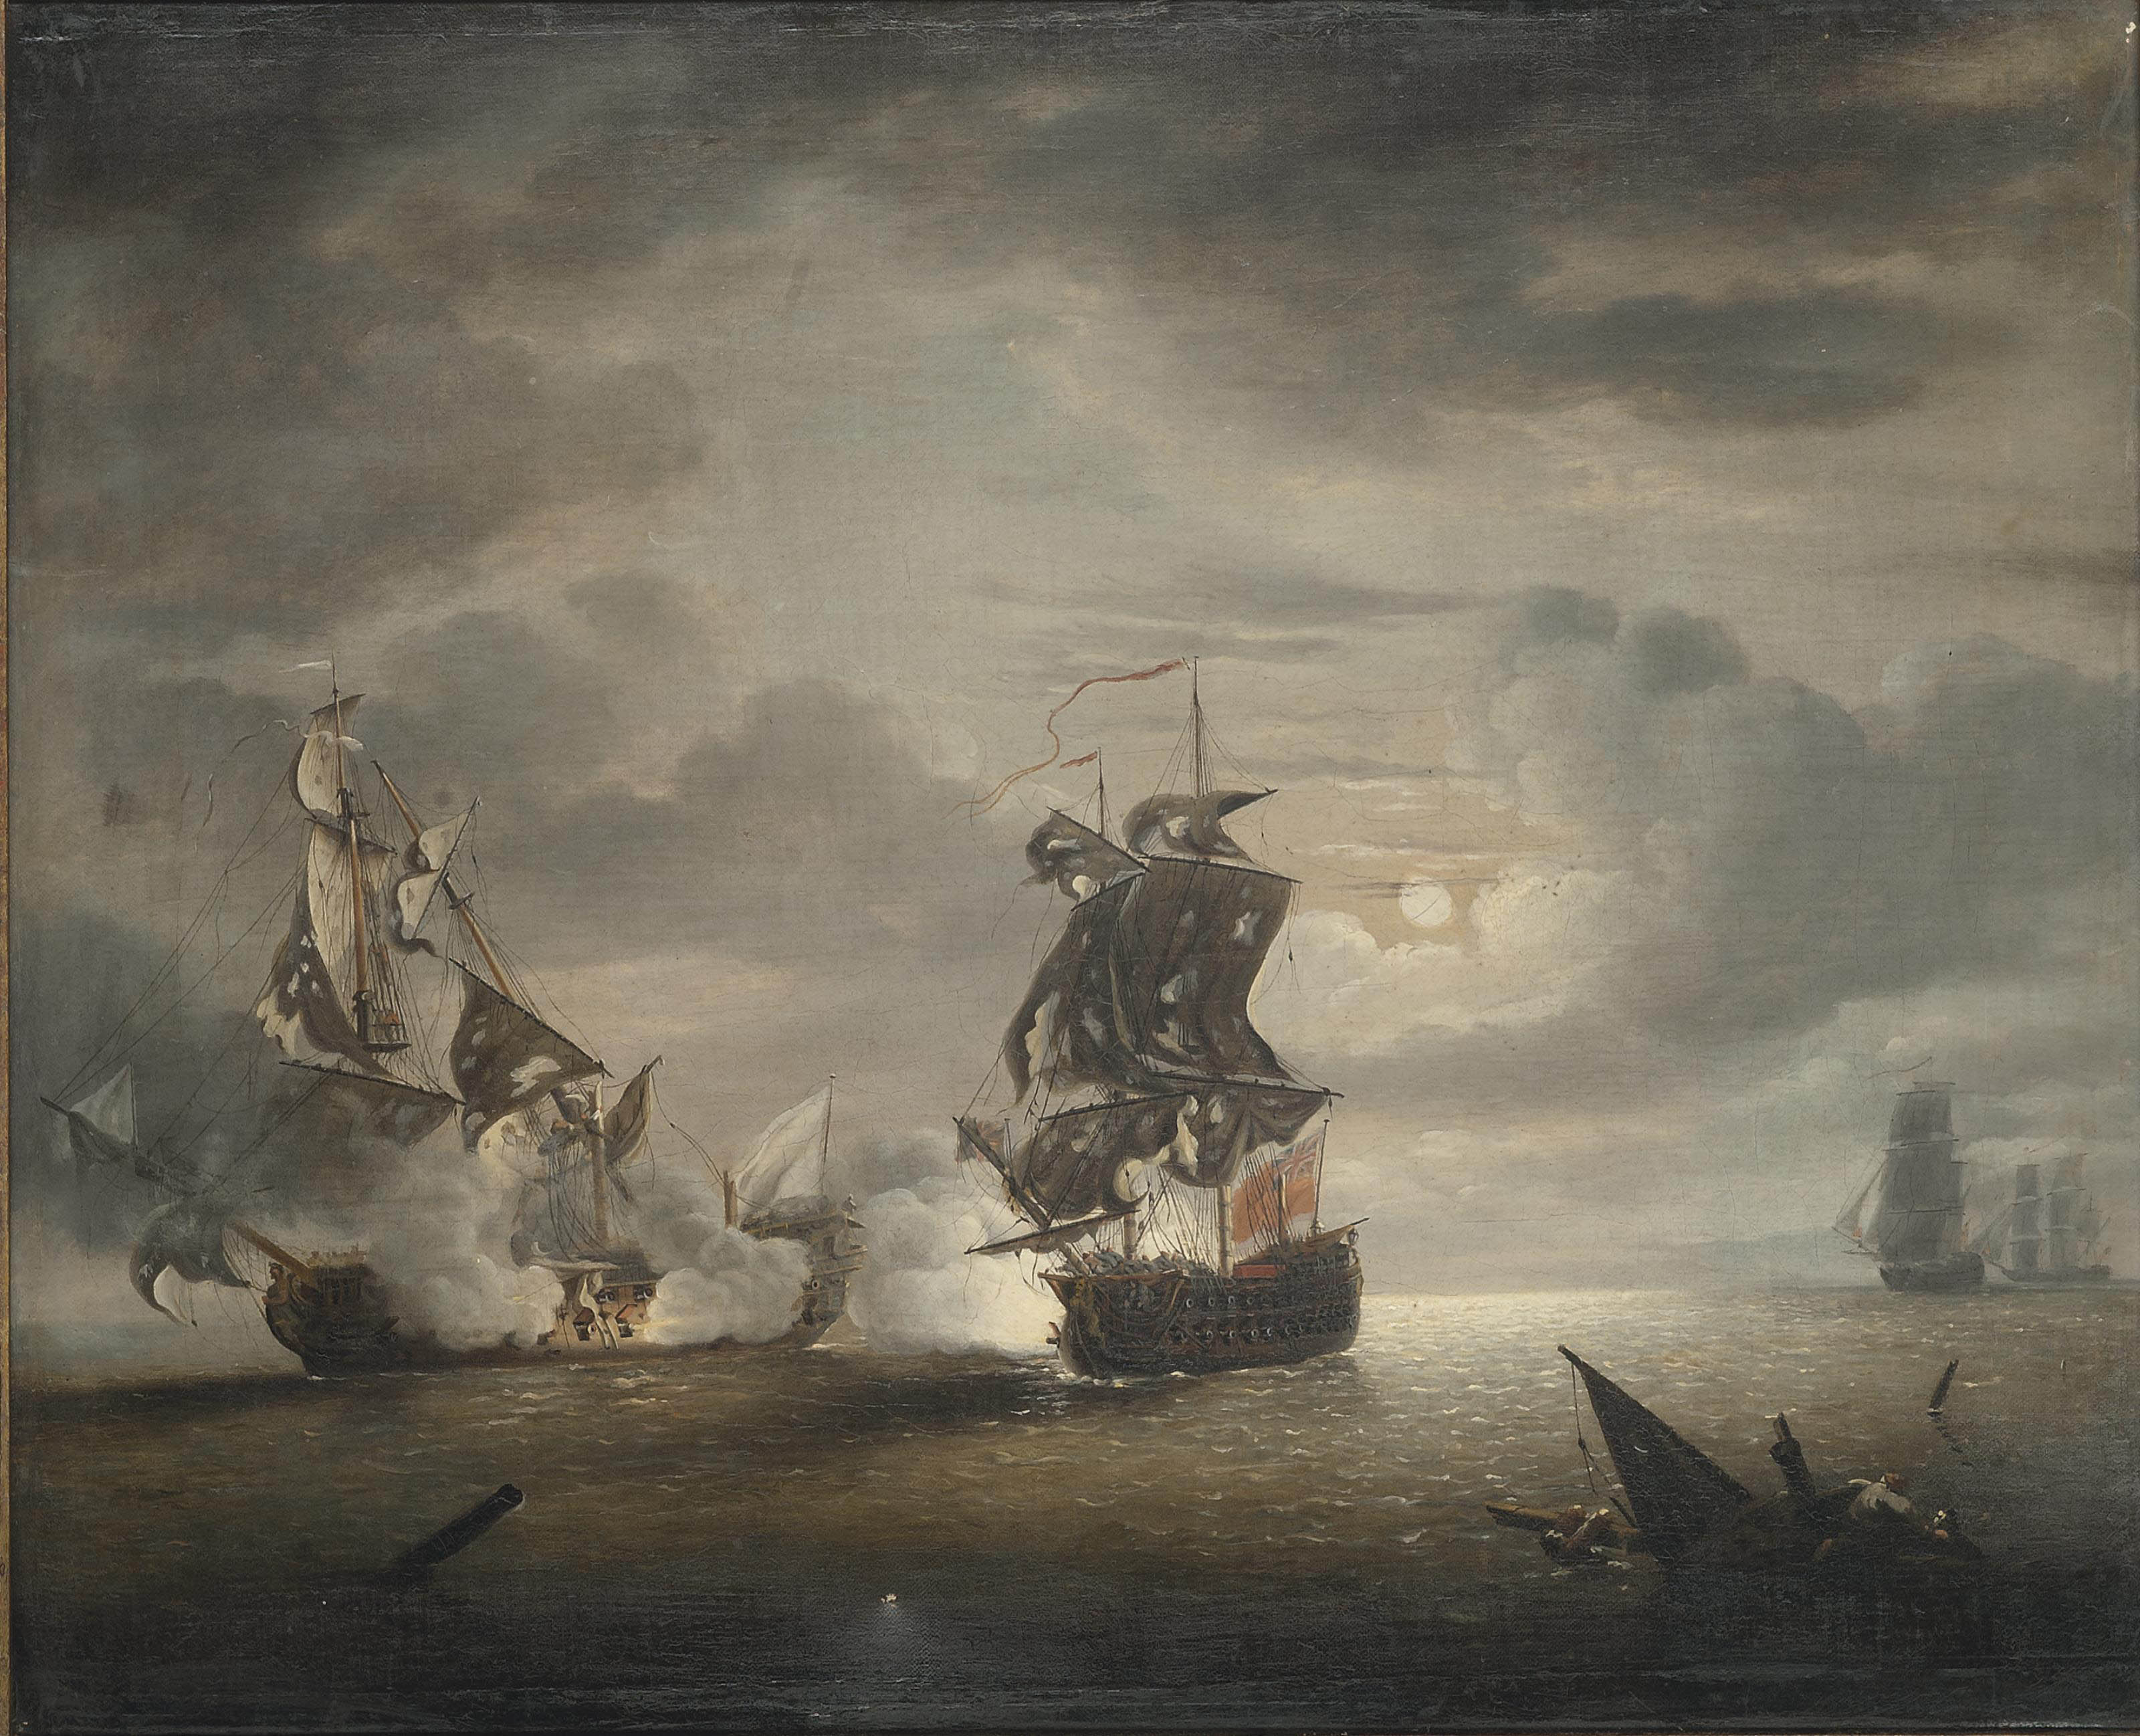 The Battle of Cartagena, 28th February 1758: Capture of the Foudroyant by H.M.S. Monmouth